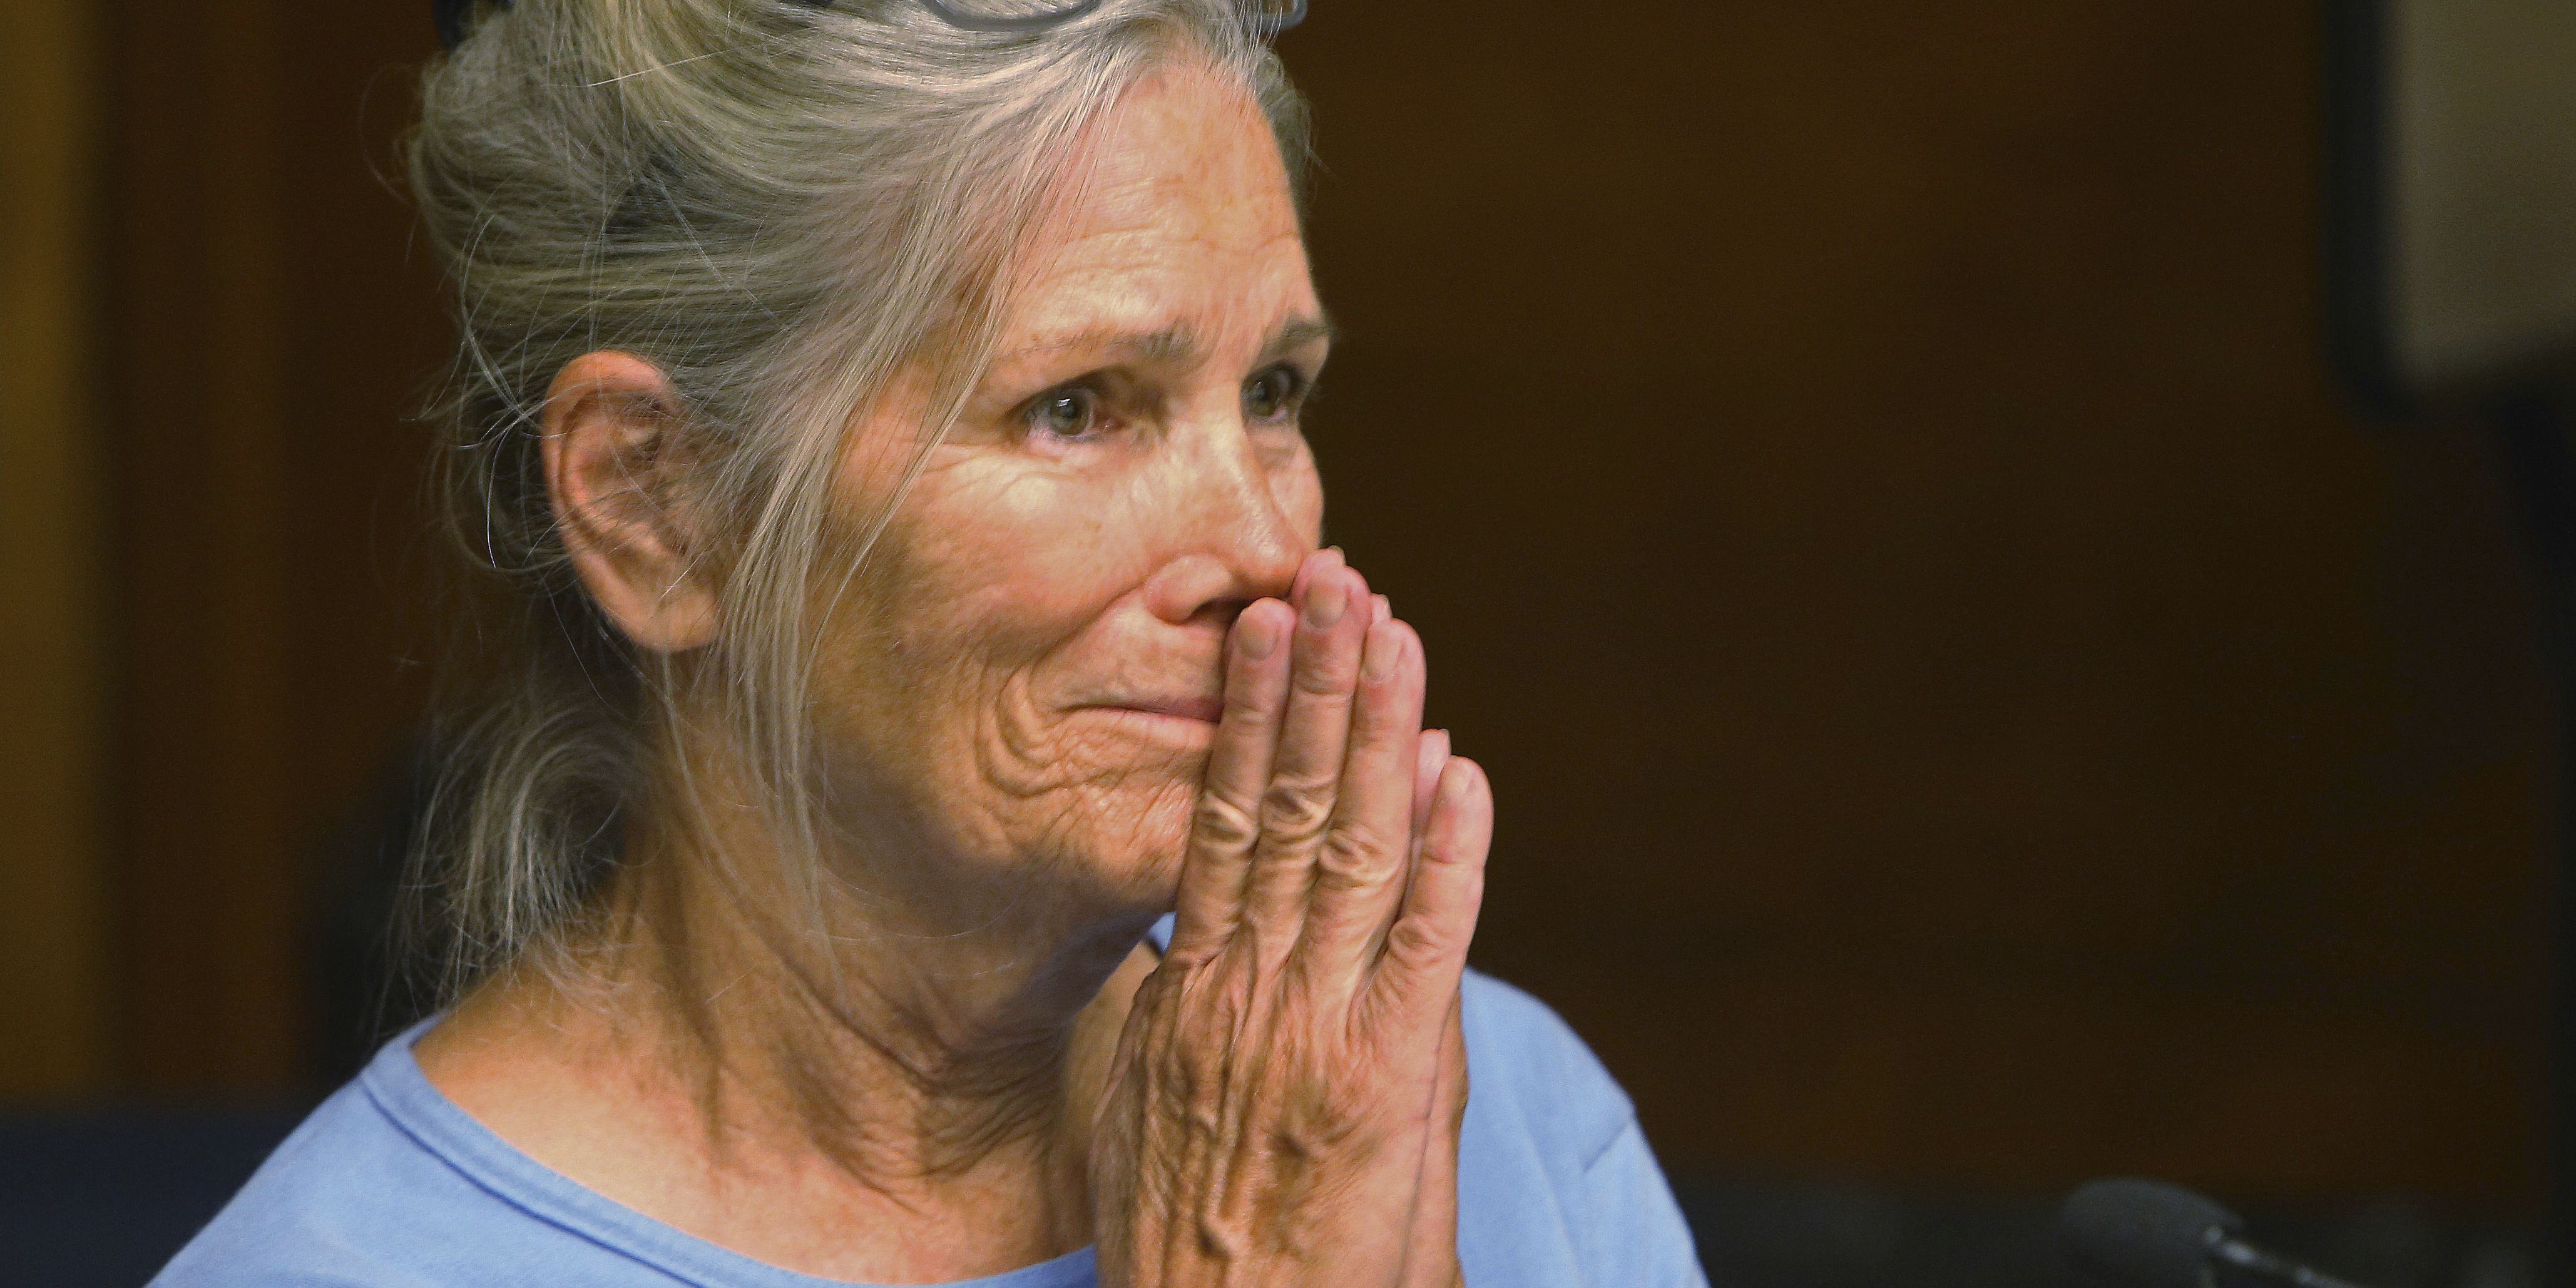 Charles Manson follower Van Houten gets another chance at parole